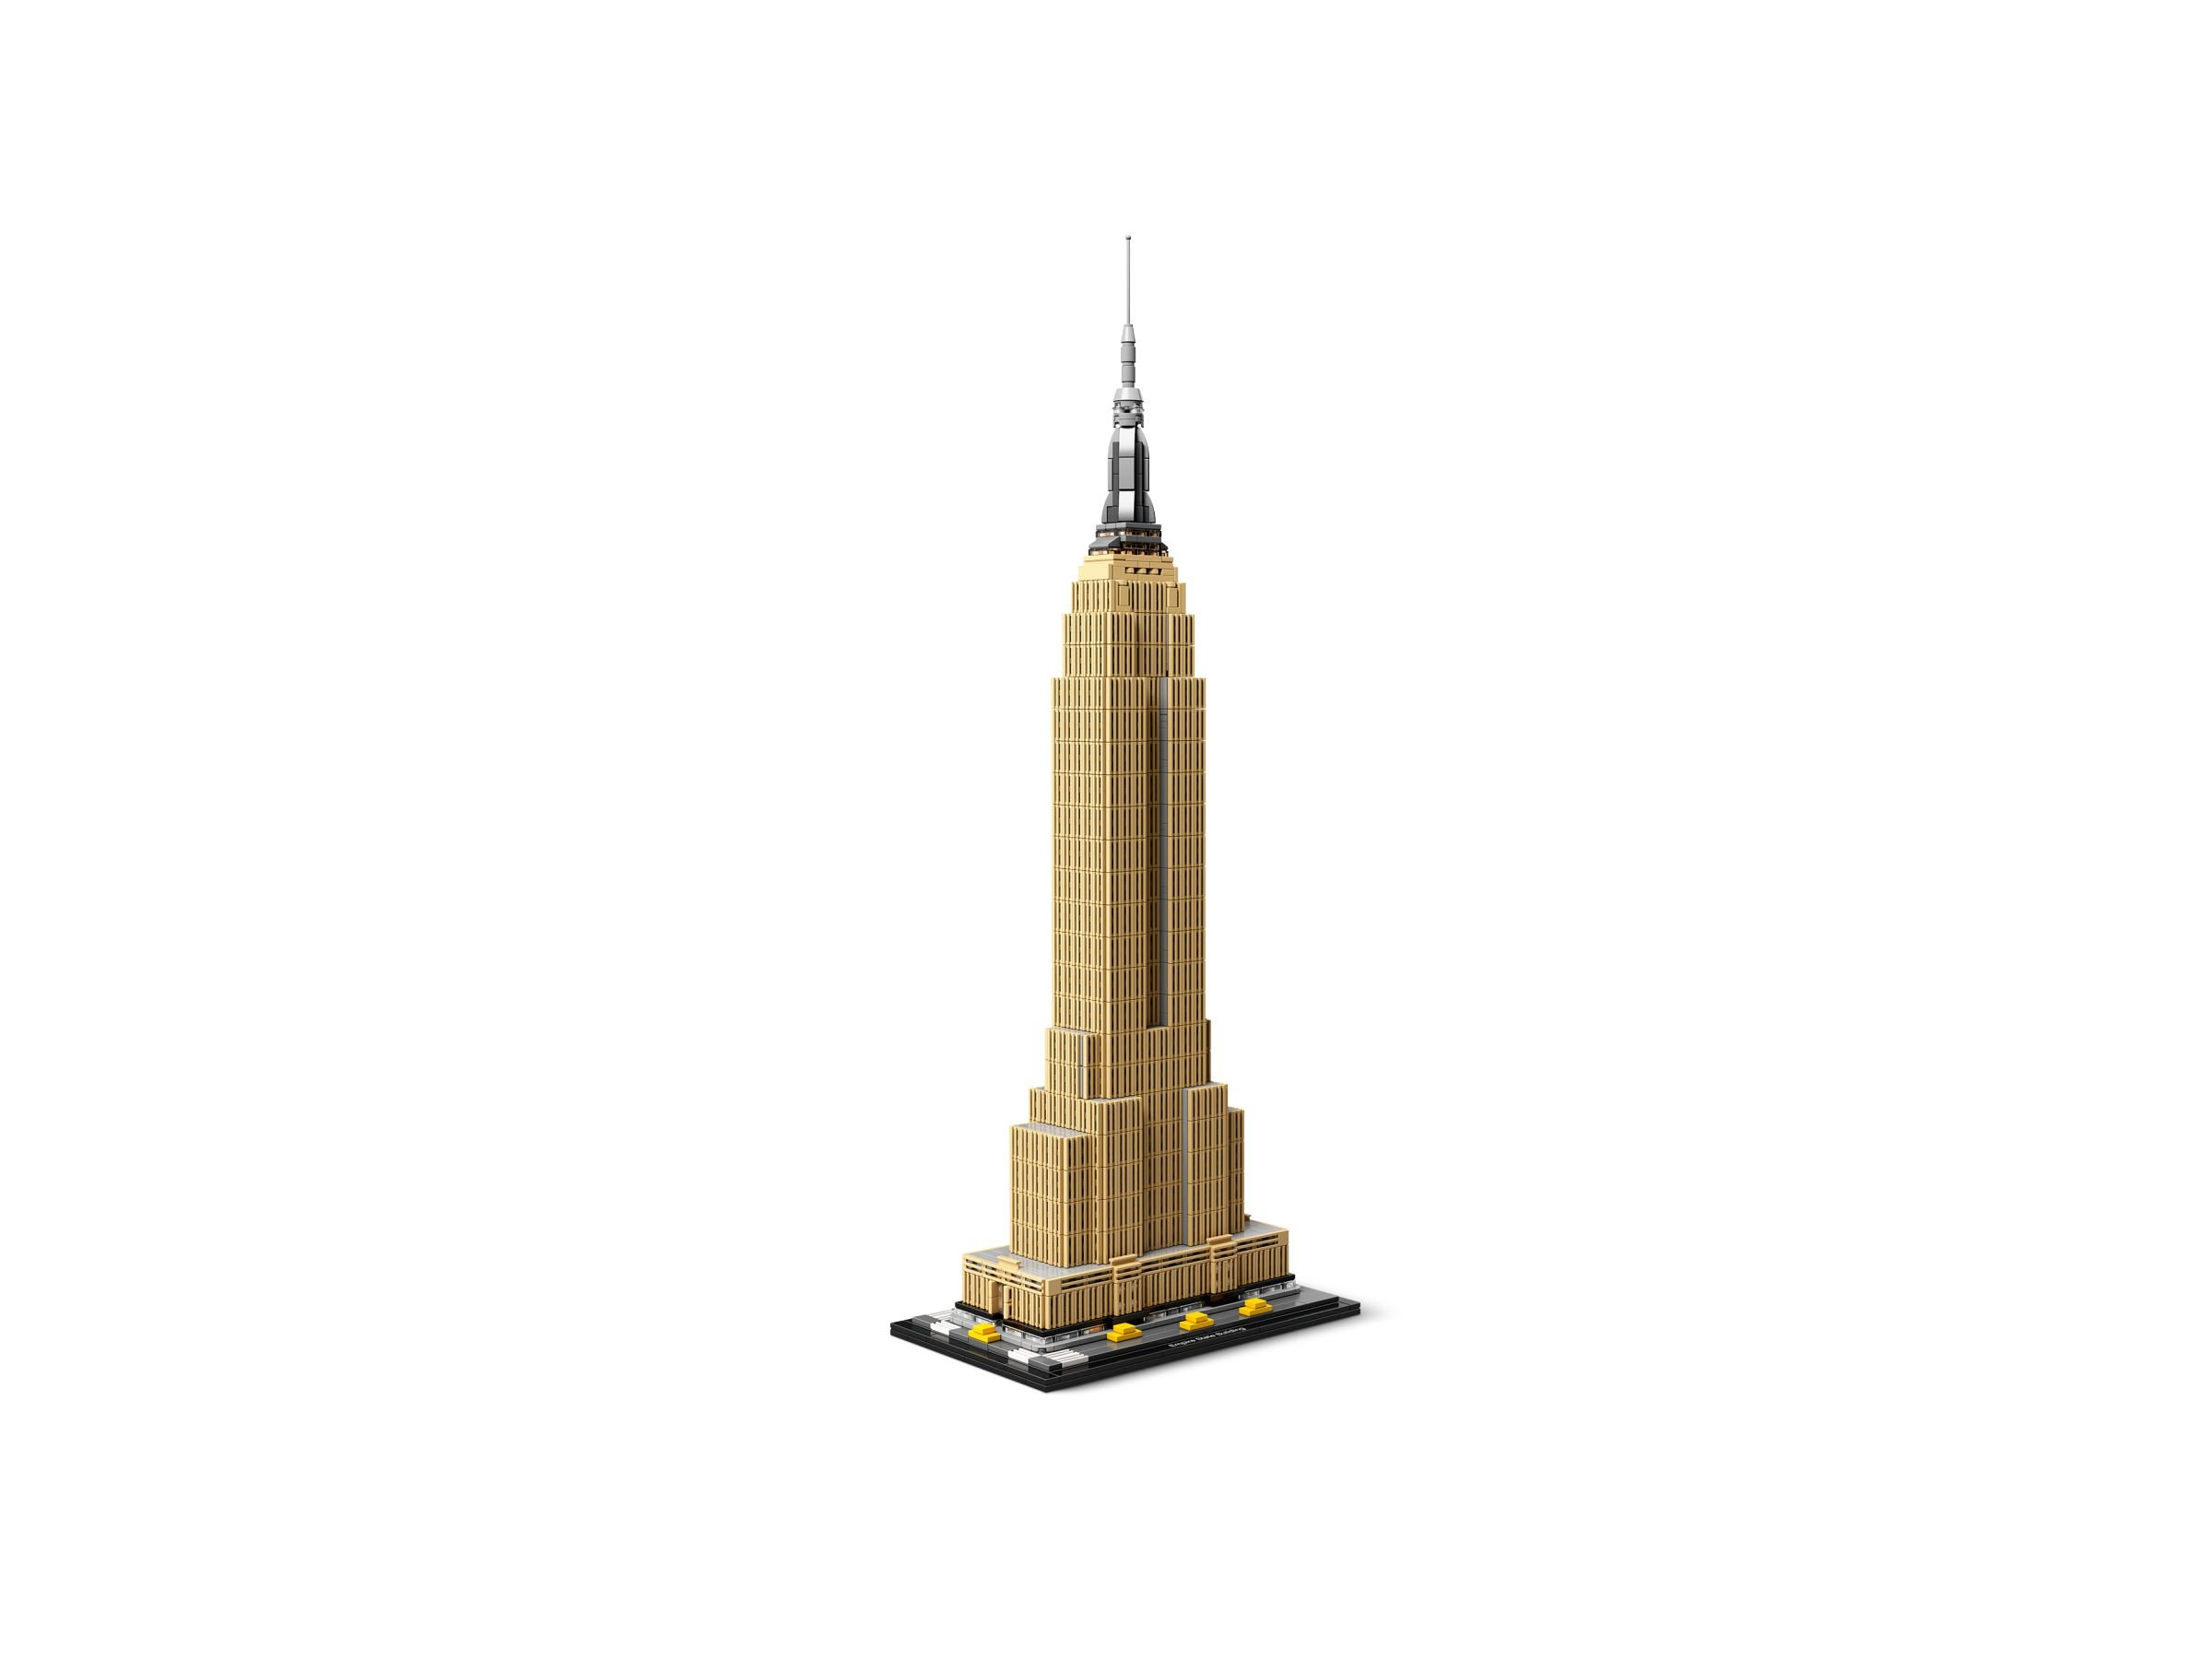 LEGO Architecture 21046 Empire State Building LEGO_21046_alt2.jpg